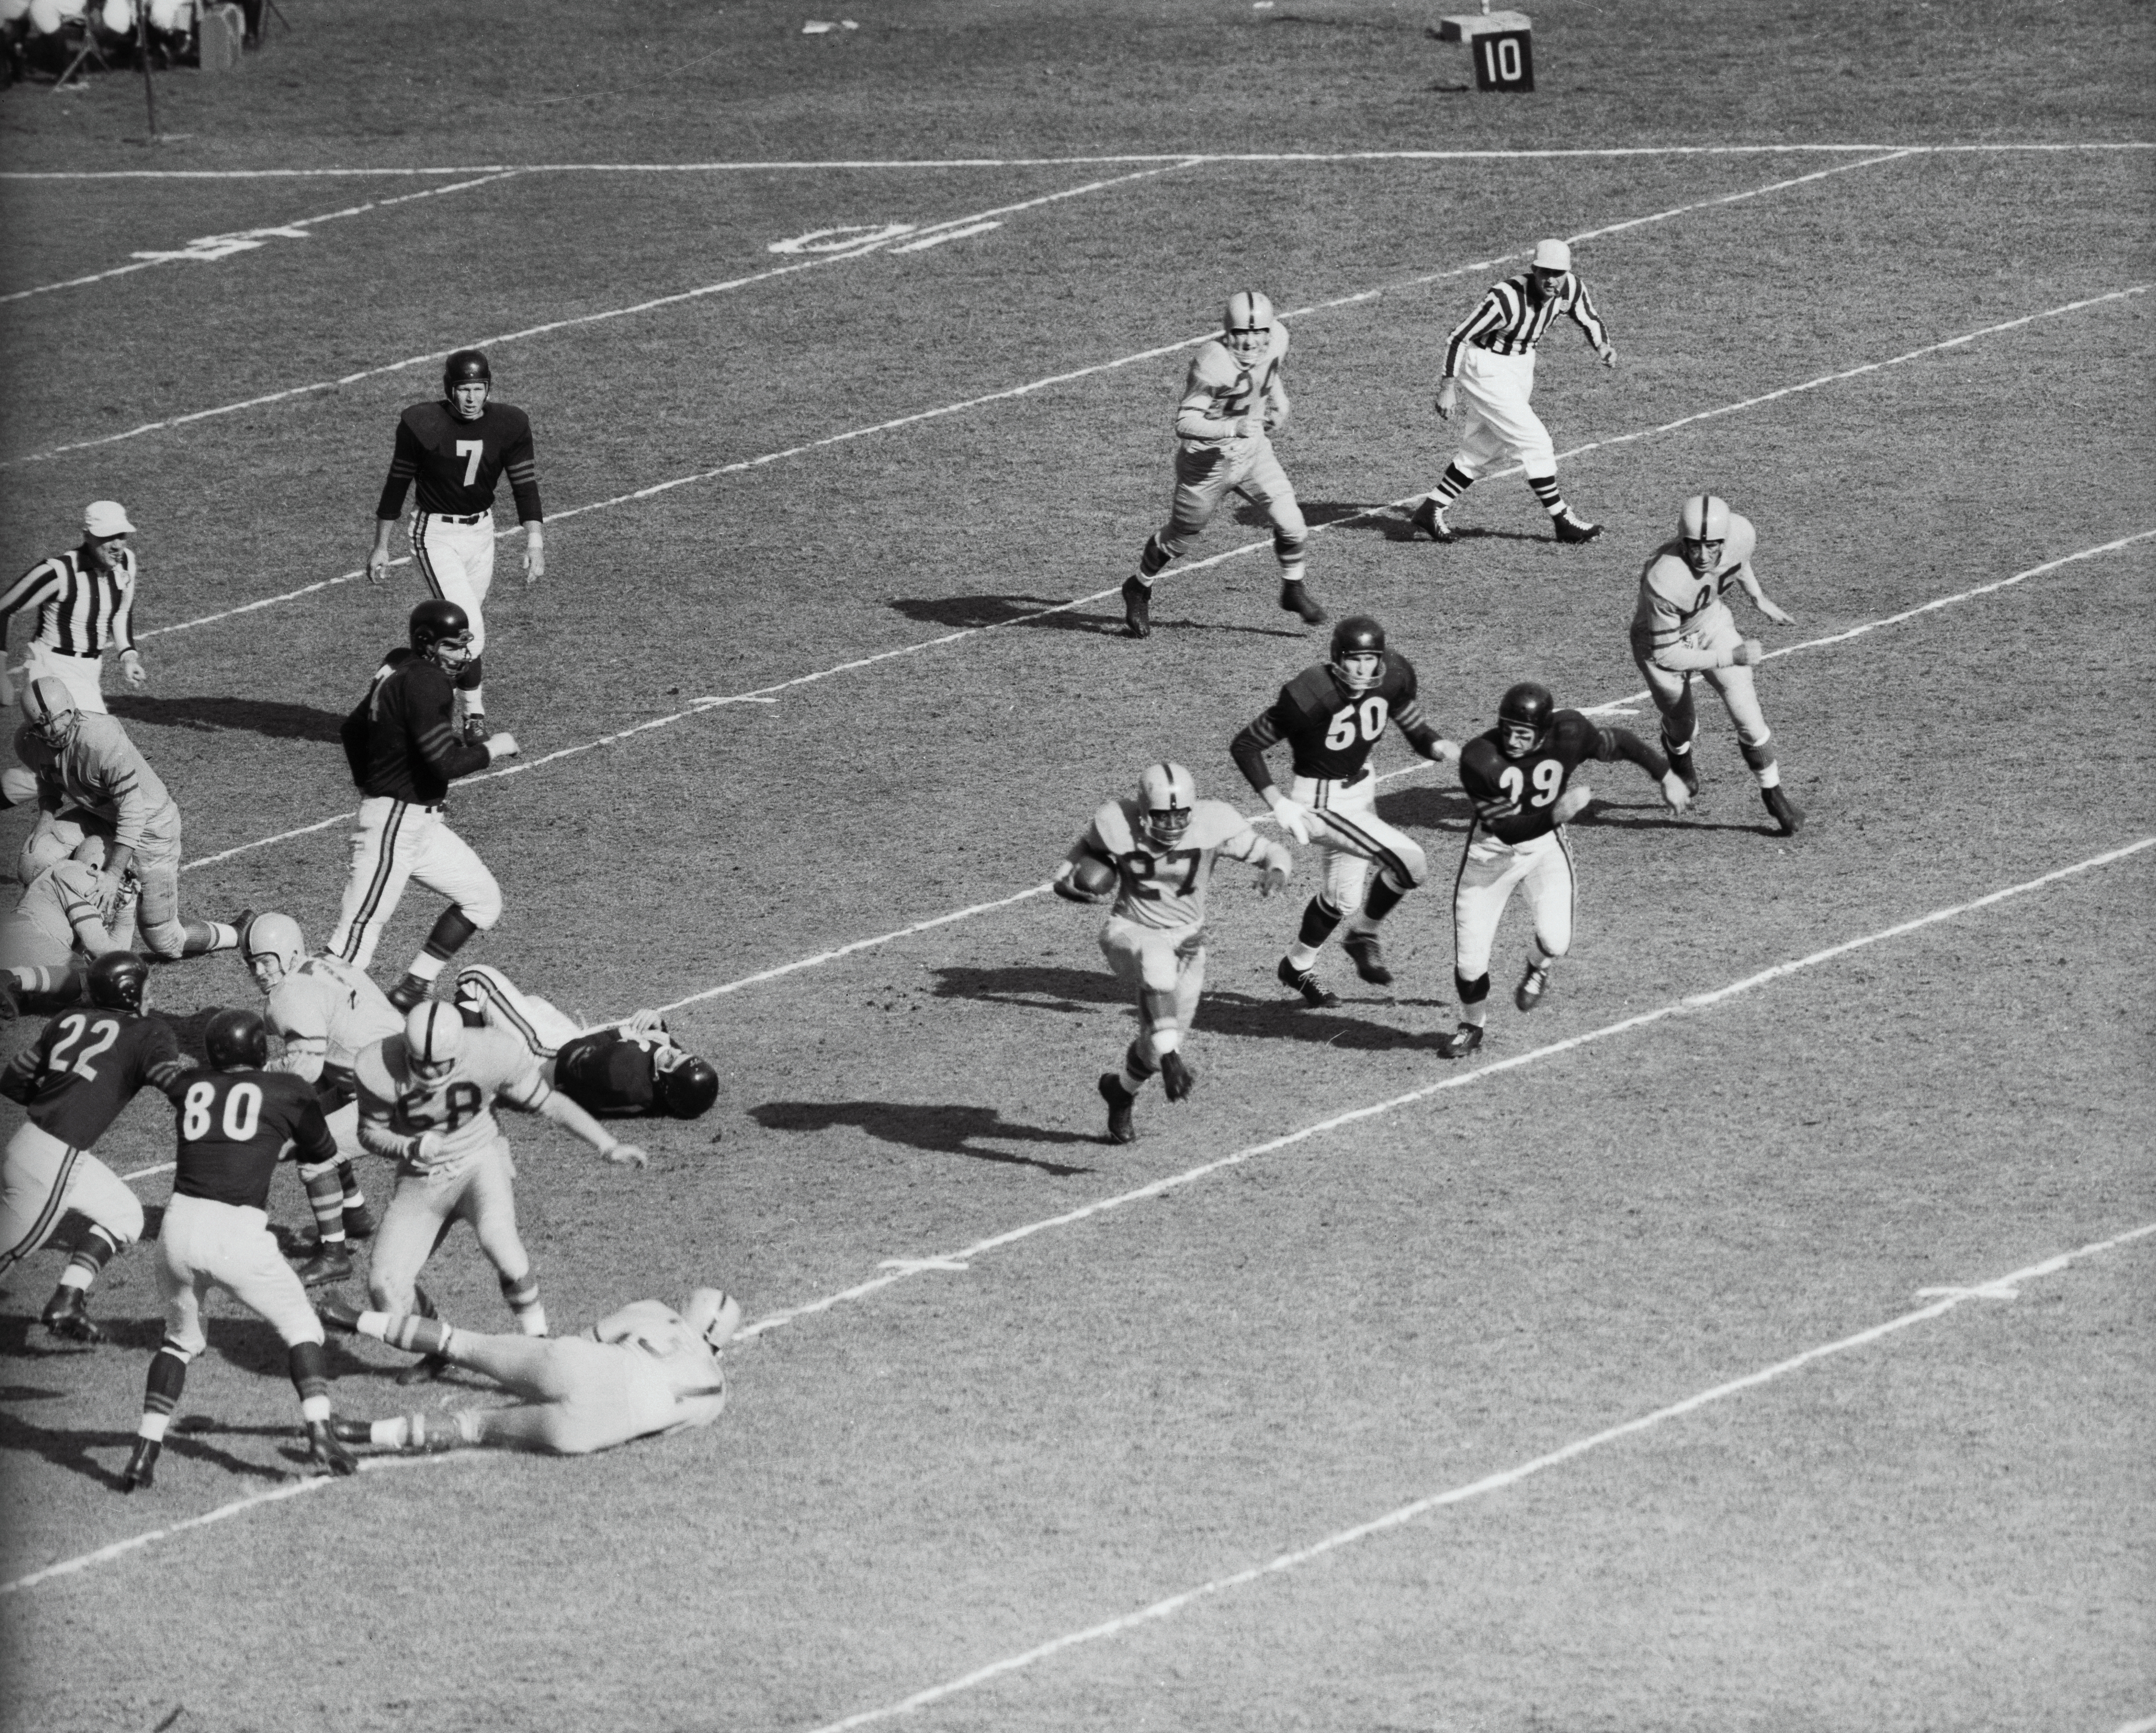 Veryl Switzer Running With the Football